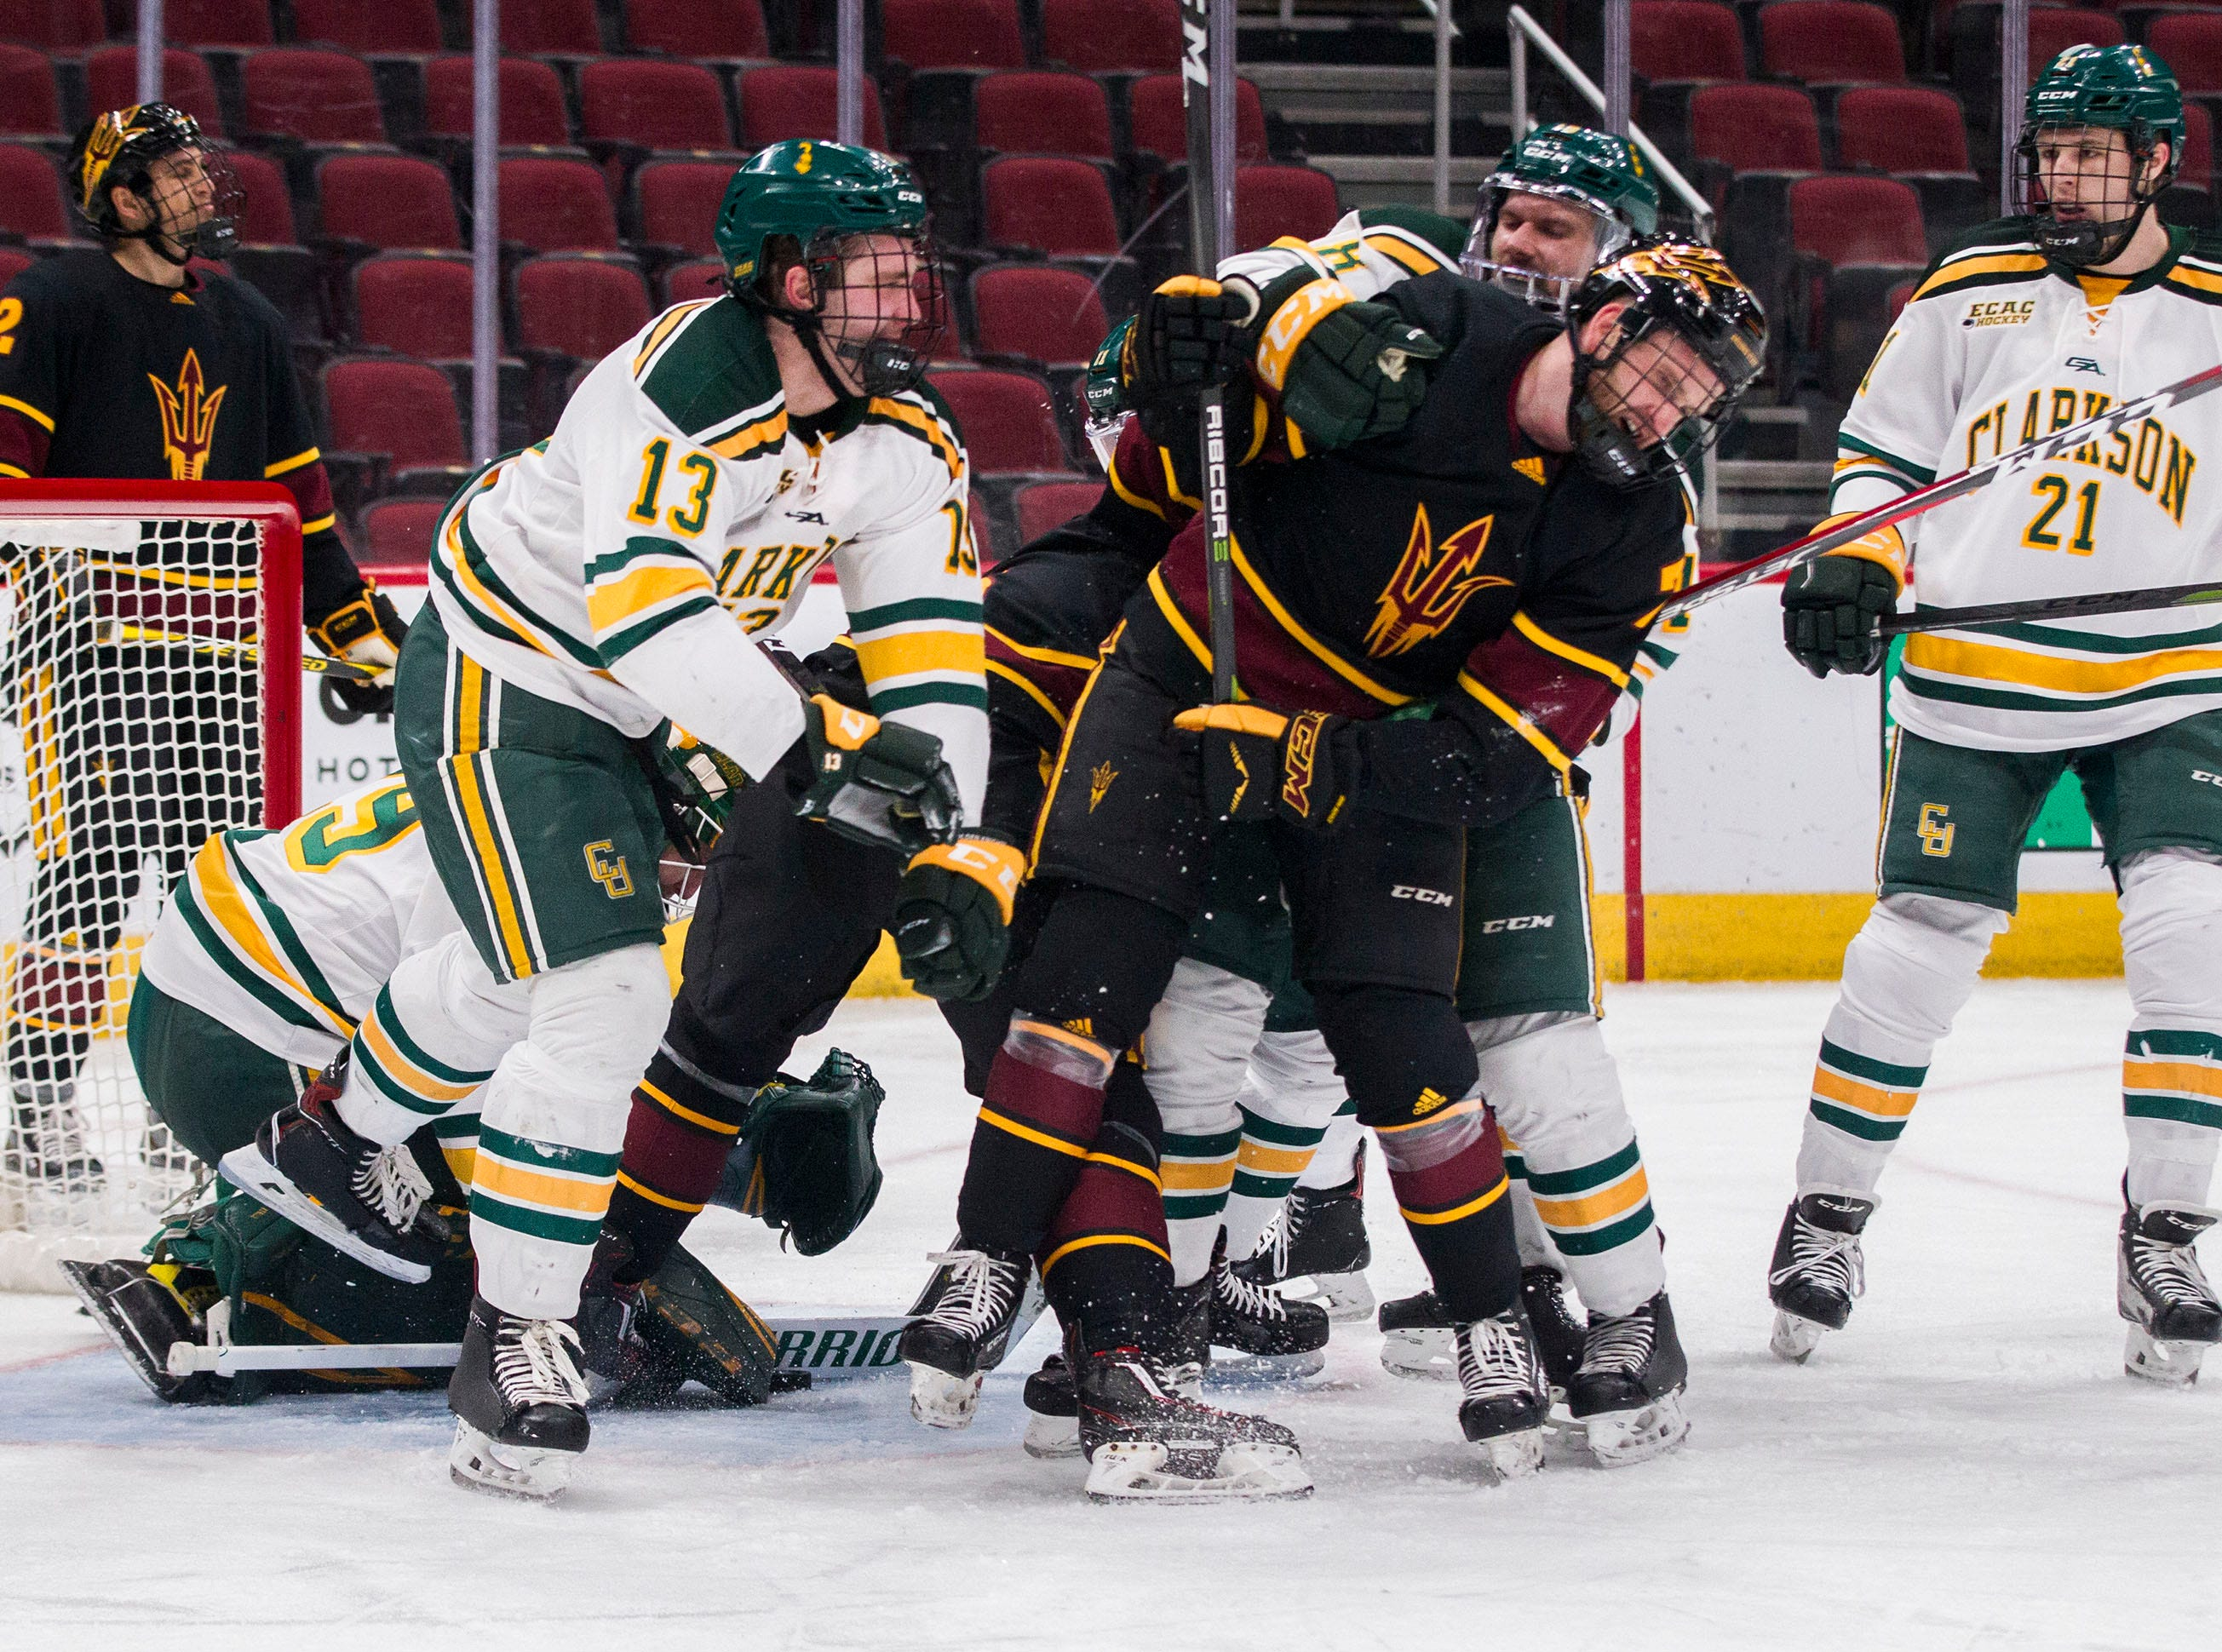 Arizona State University's Johnny Walker (7) is out numbered around the Clarkson goal during the second period of their game in the 2018 Desert Hockey Classic in Glendale, Friday, Dec. 28, 2018.